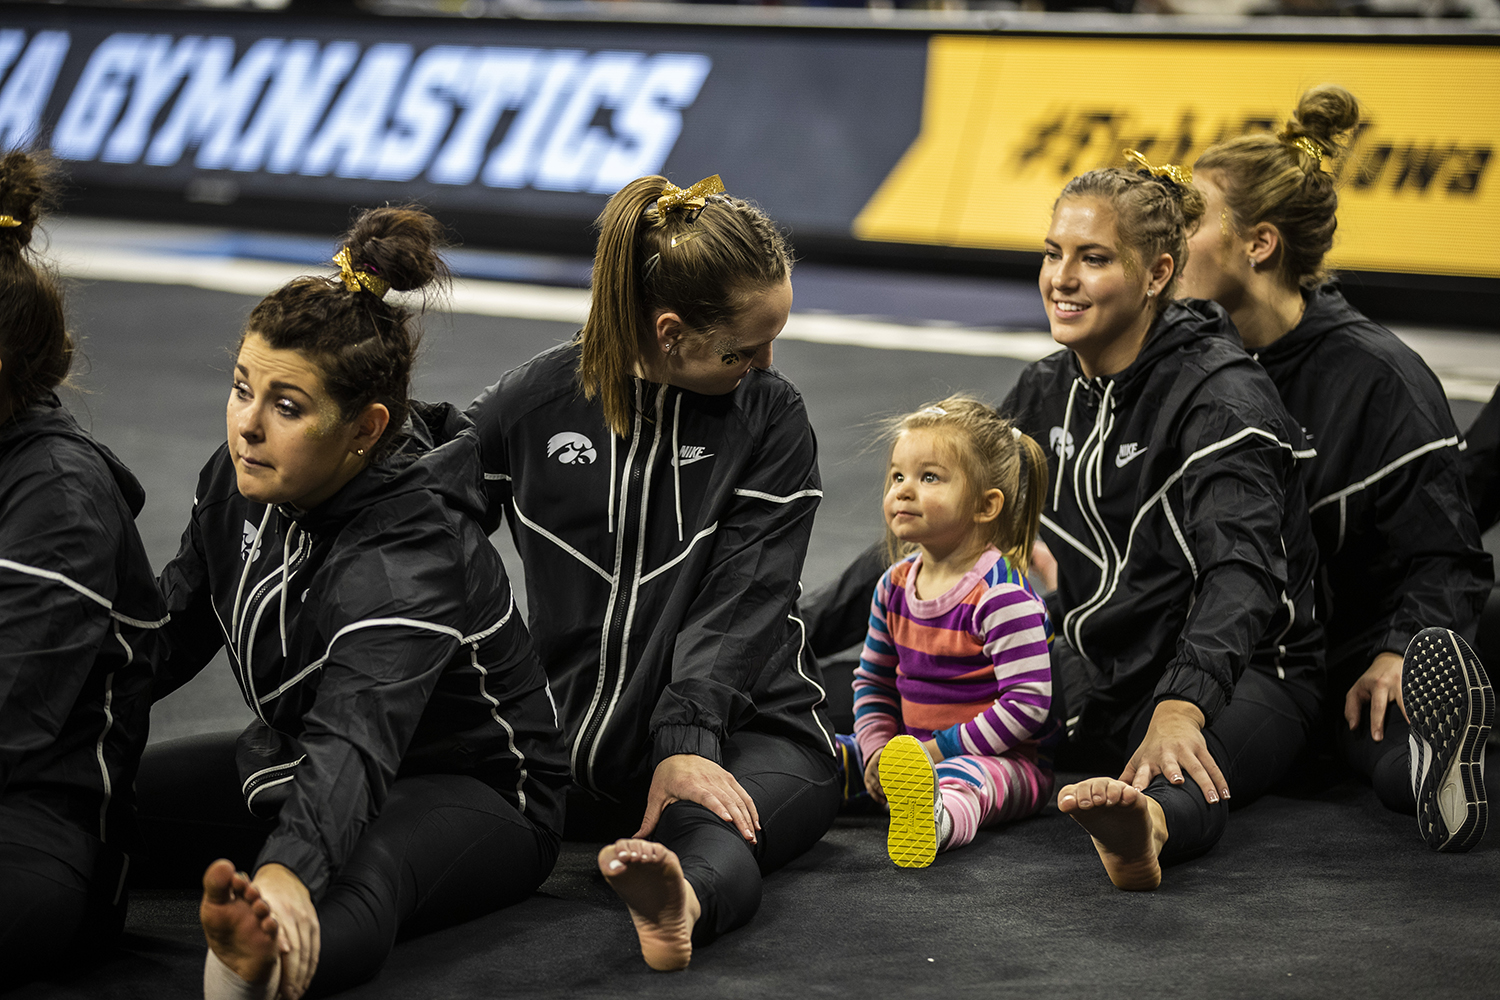 A+young+fan+joins+Iowa+gymnasts+for+the+awards+ceremony+during+the+women%27s+gymnastics+meet+vs.+SEMO+at+Carver-Hawkeye+Arena+on+Friday%2C+January+11%2C+2019.+The+GymHawks+defeated+the+Redhawks+194.700-180.925.+